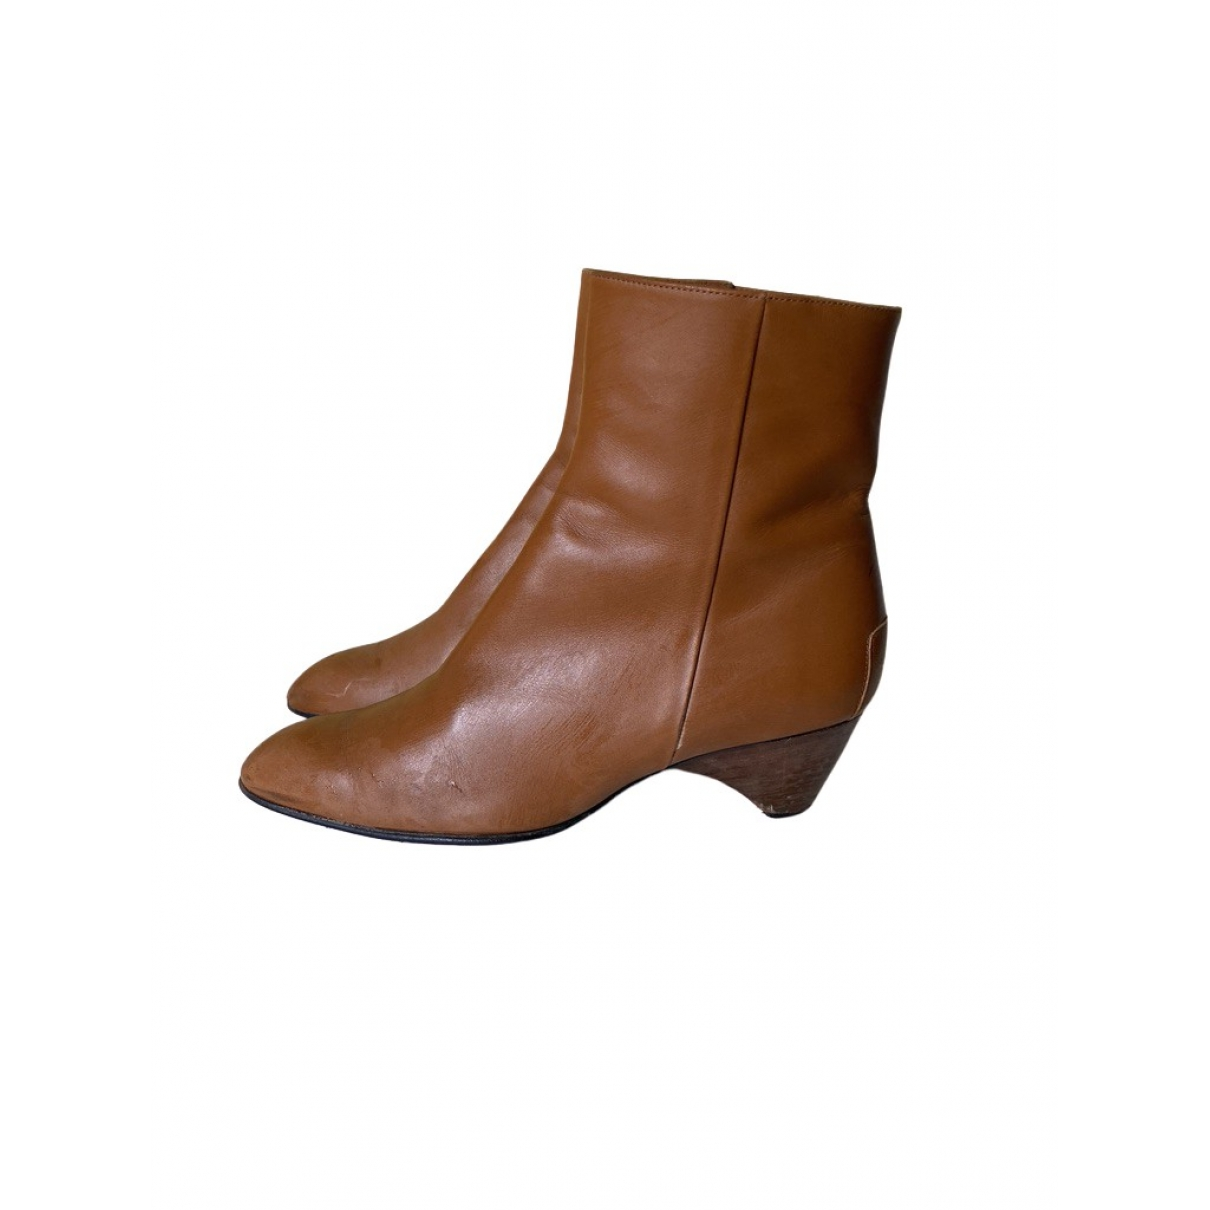 Tod's \N Beige Leather Ankle boots for Women 37.5 EU